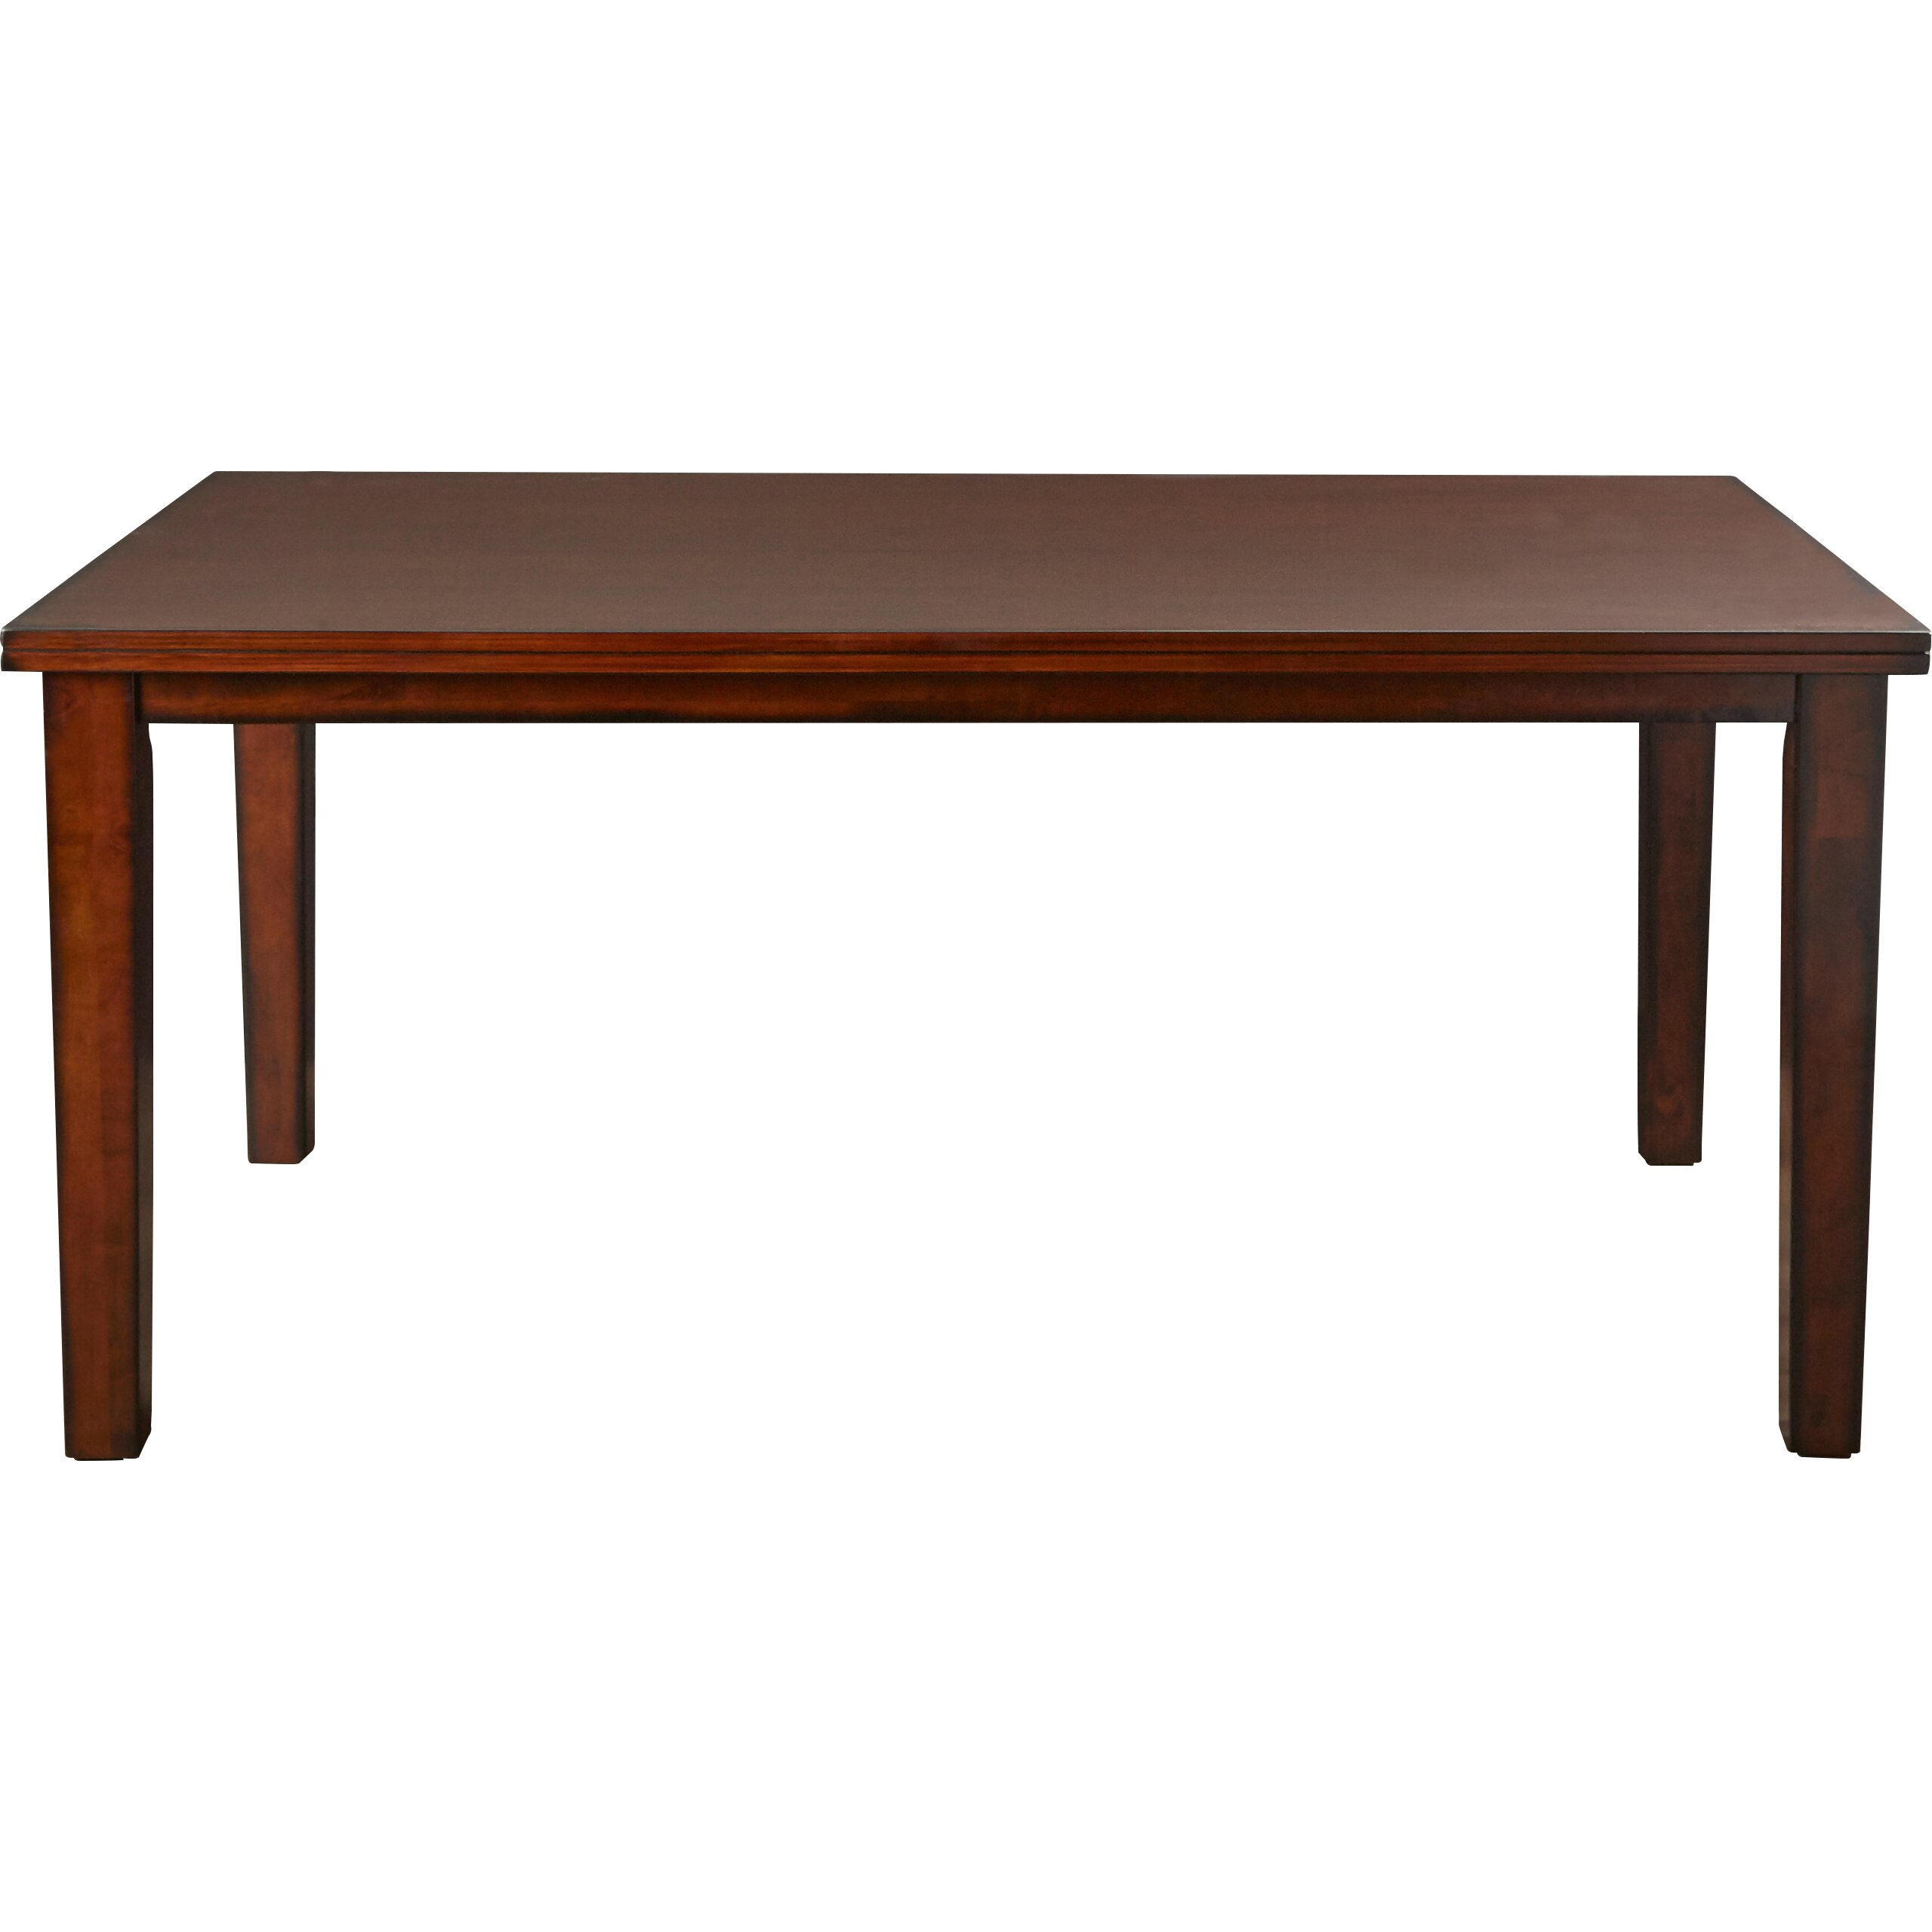 Red barrel studio kauai dining table reviews wayfair for Red dining table